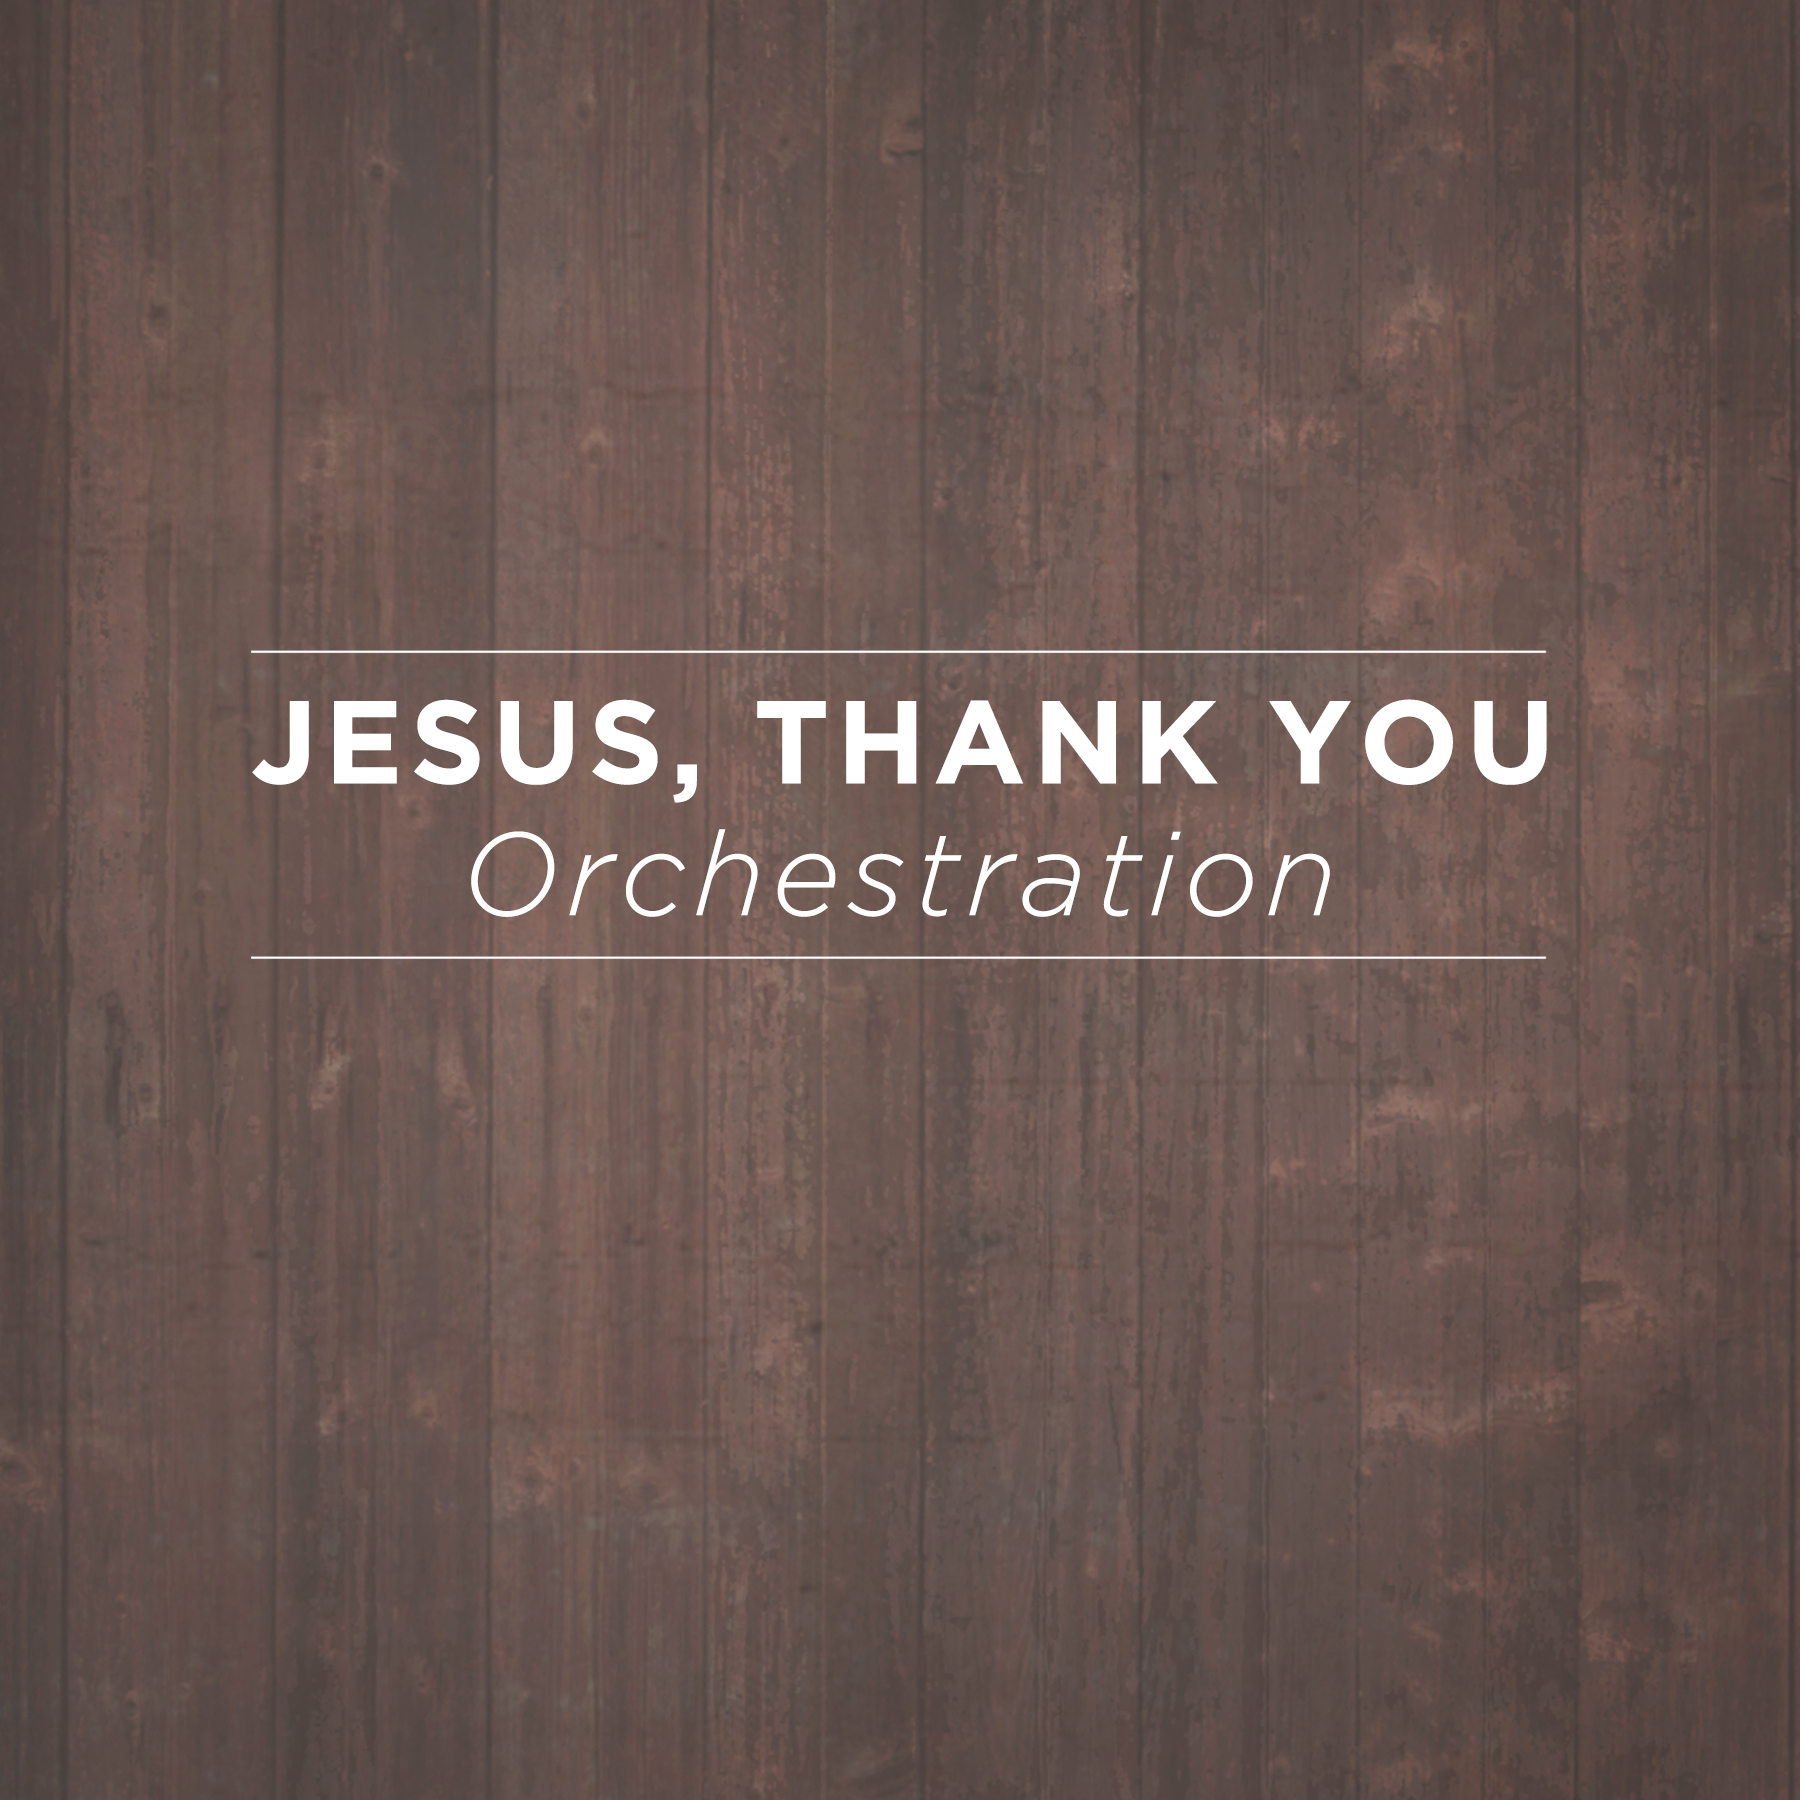 Orchestration Image